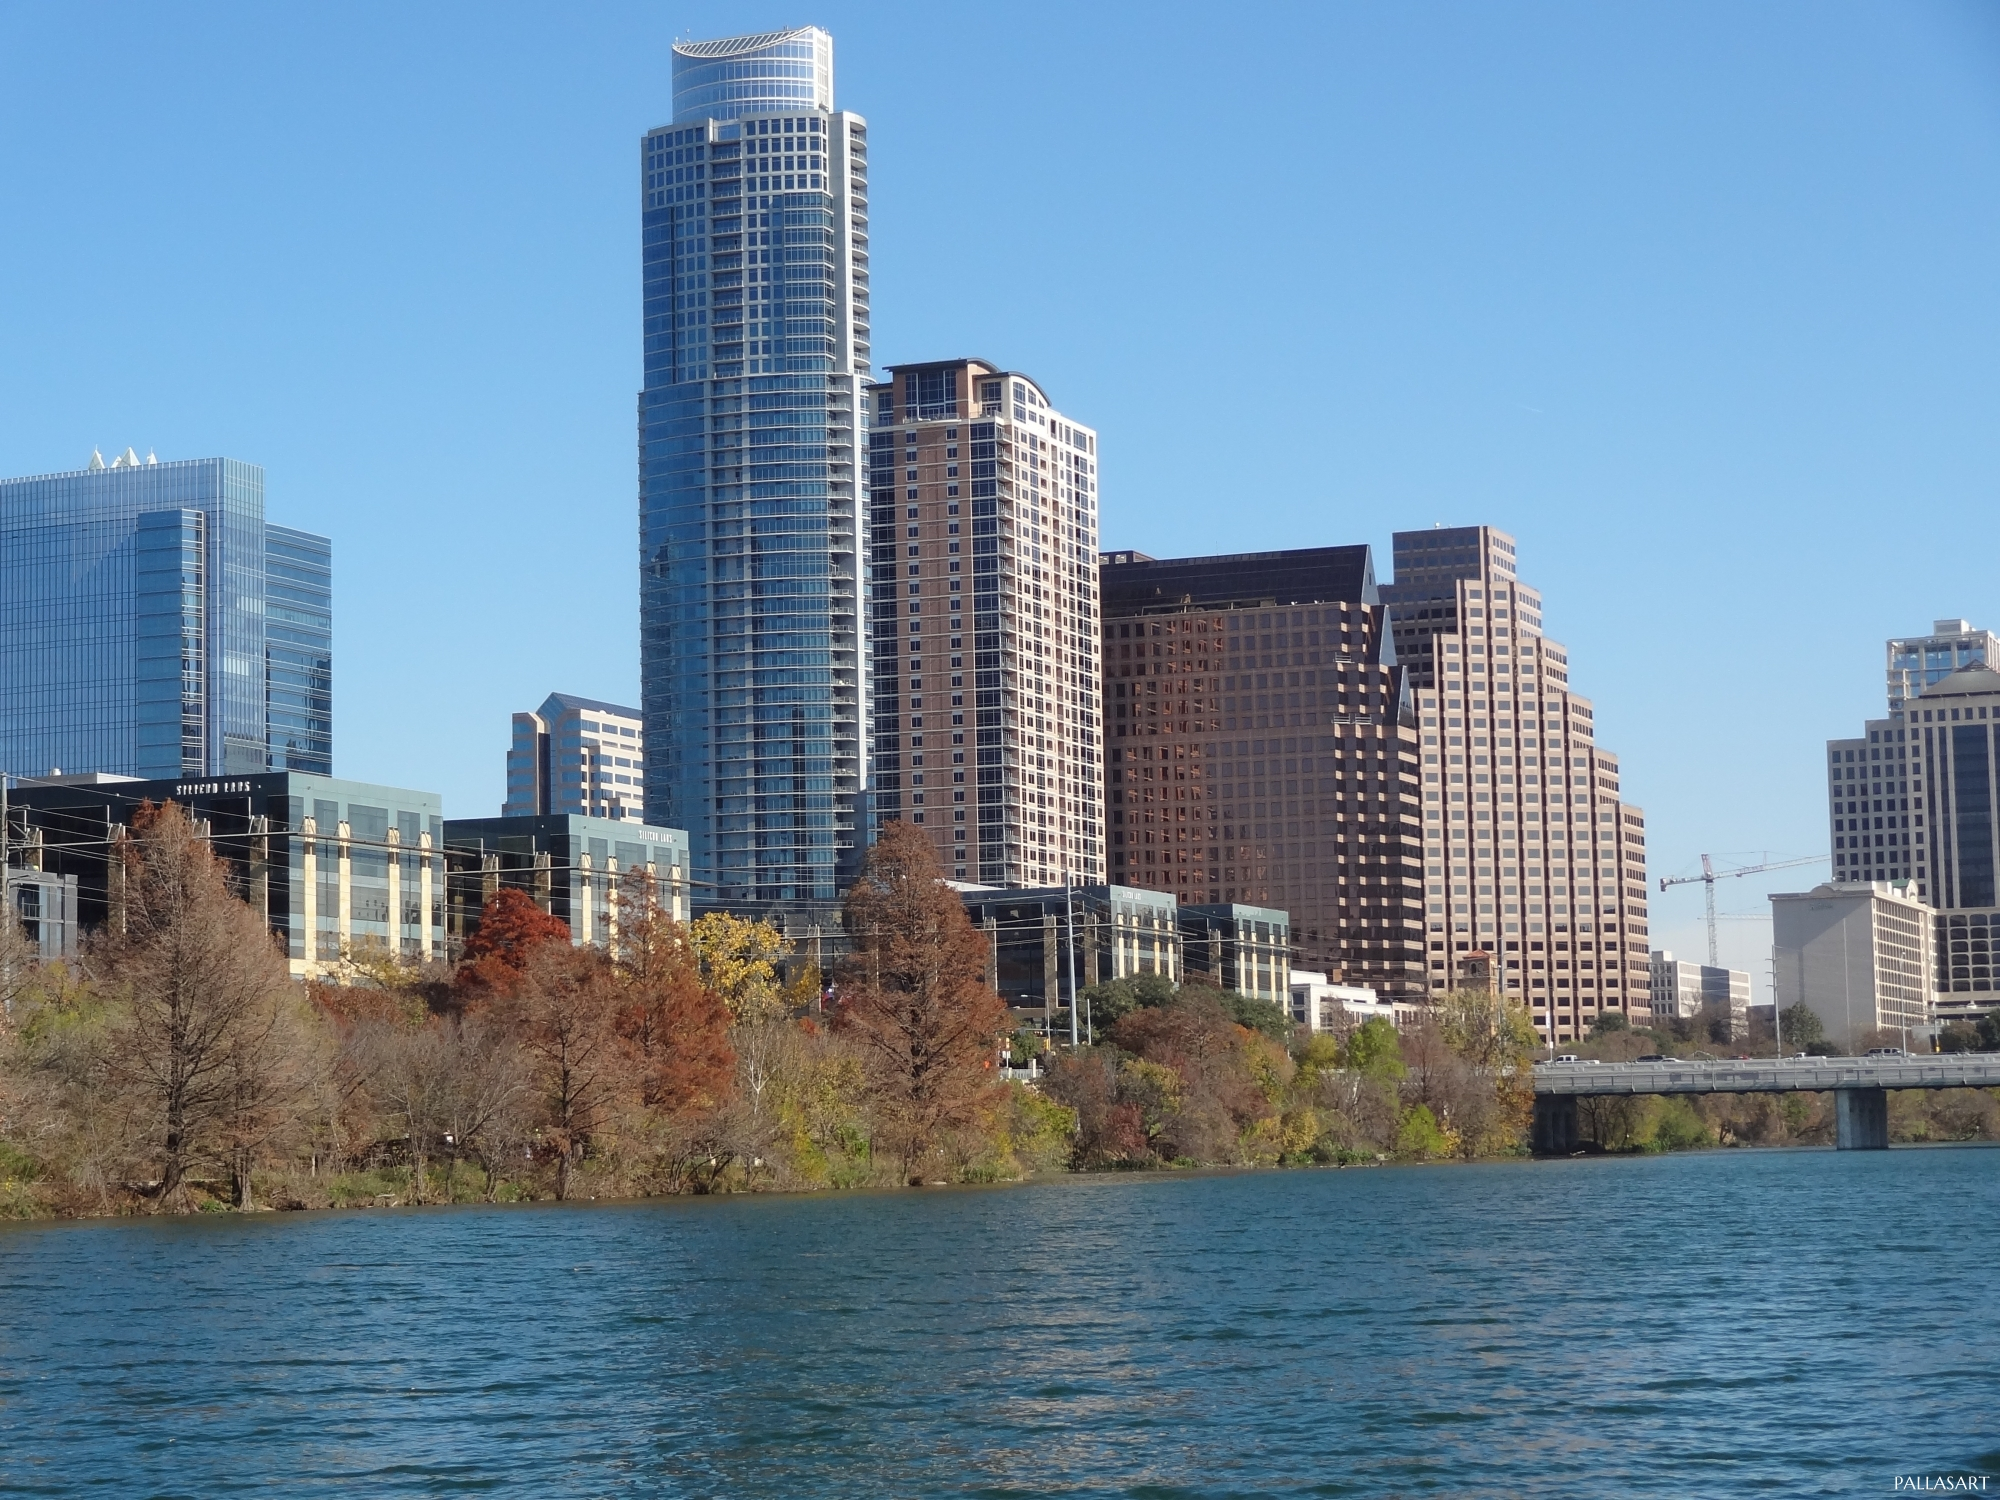 Town Lake in Austin, Texas